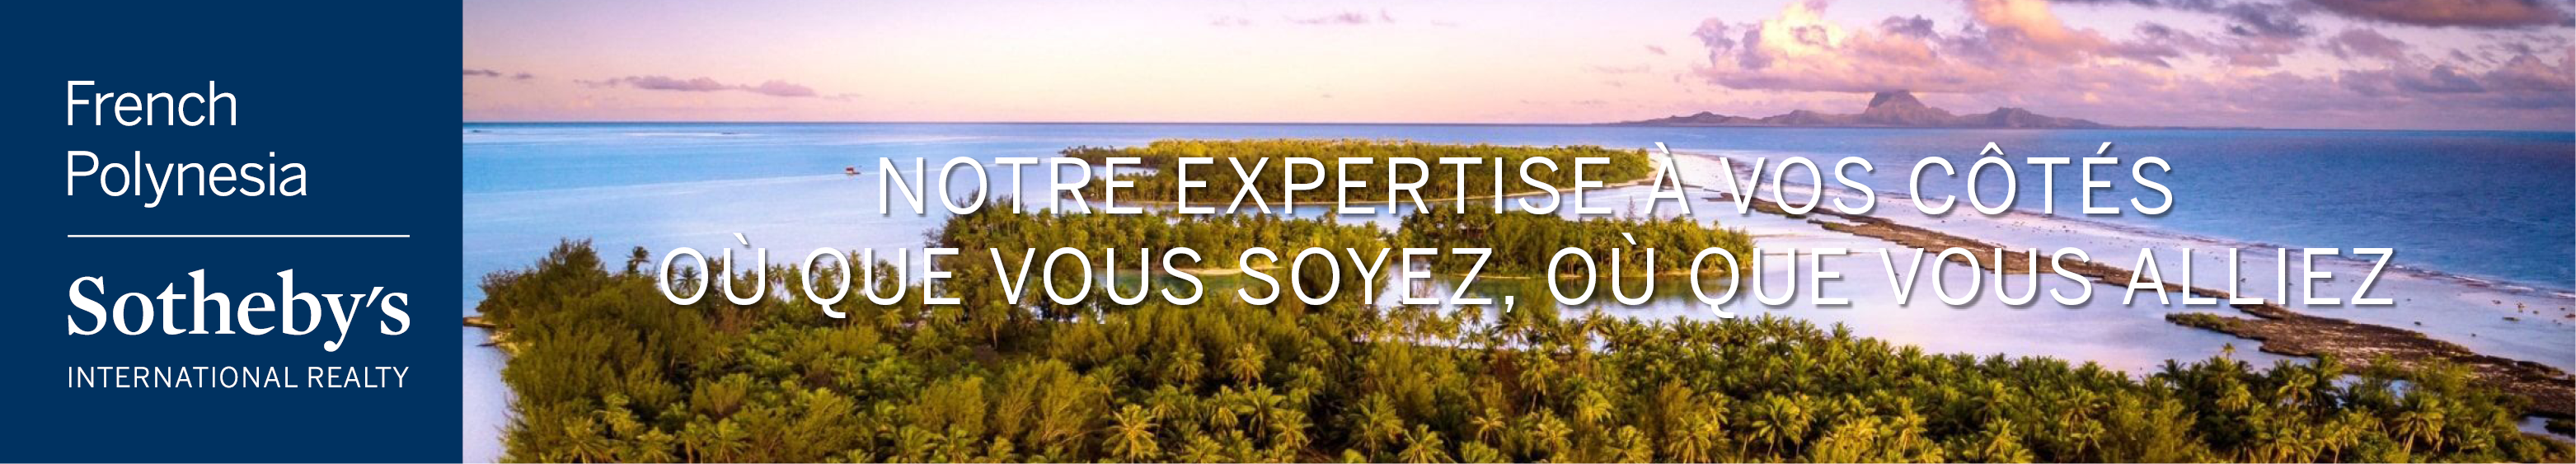 Jacques Menahem | French Polynesia Sotheby's International Realty